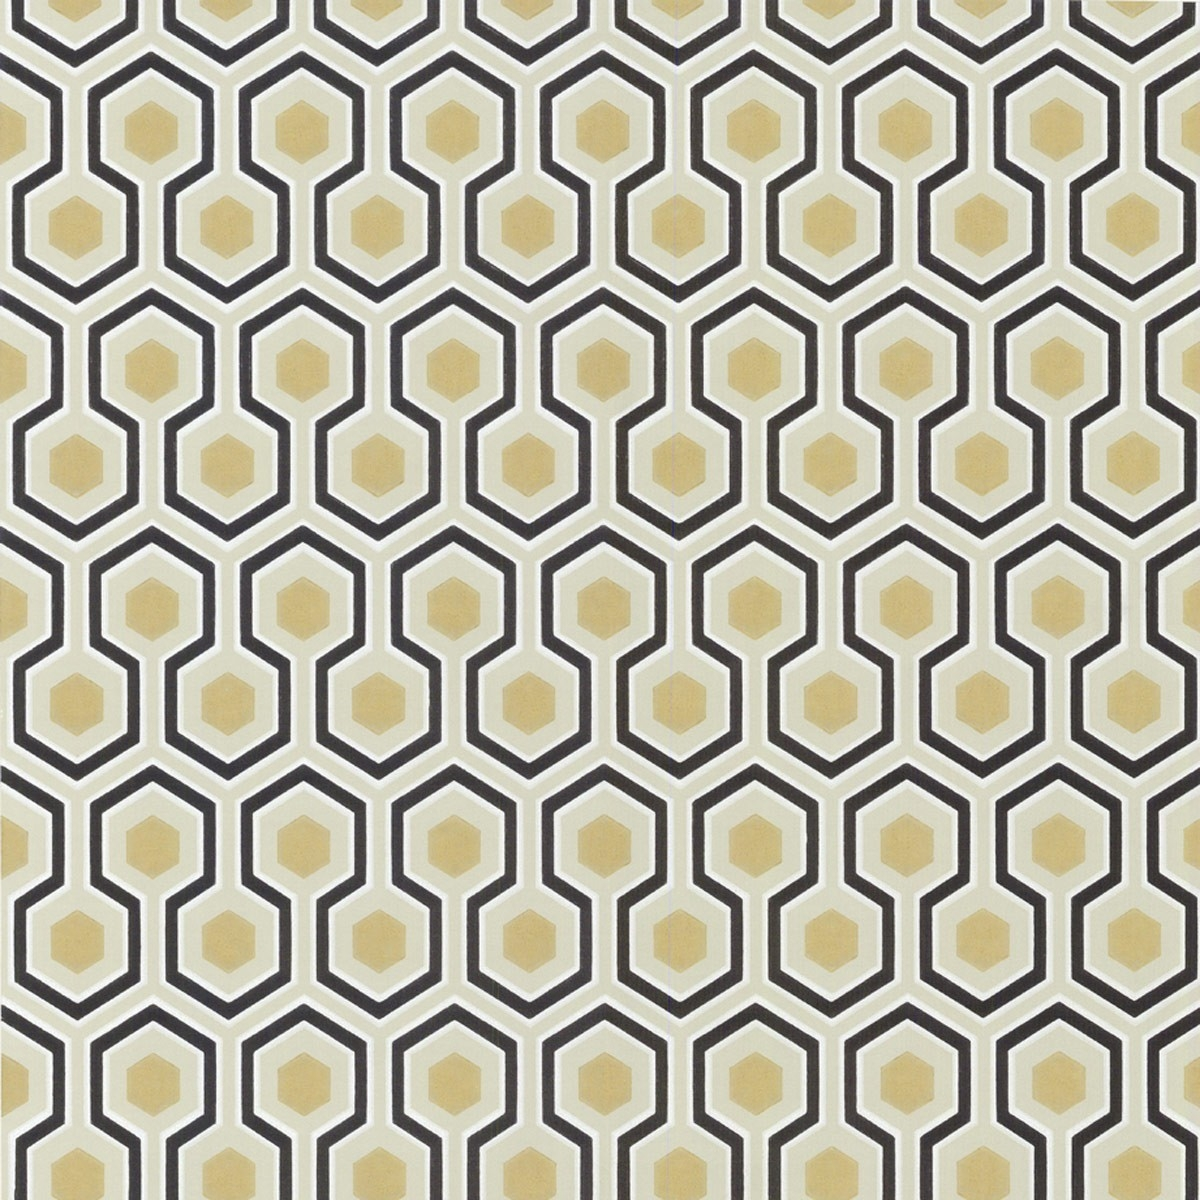 Papier peint hicks 39 hexagon cole and son - Les plus beaux papiers peints ...